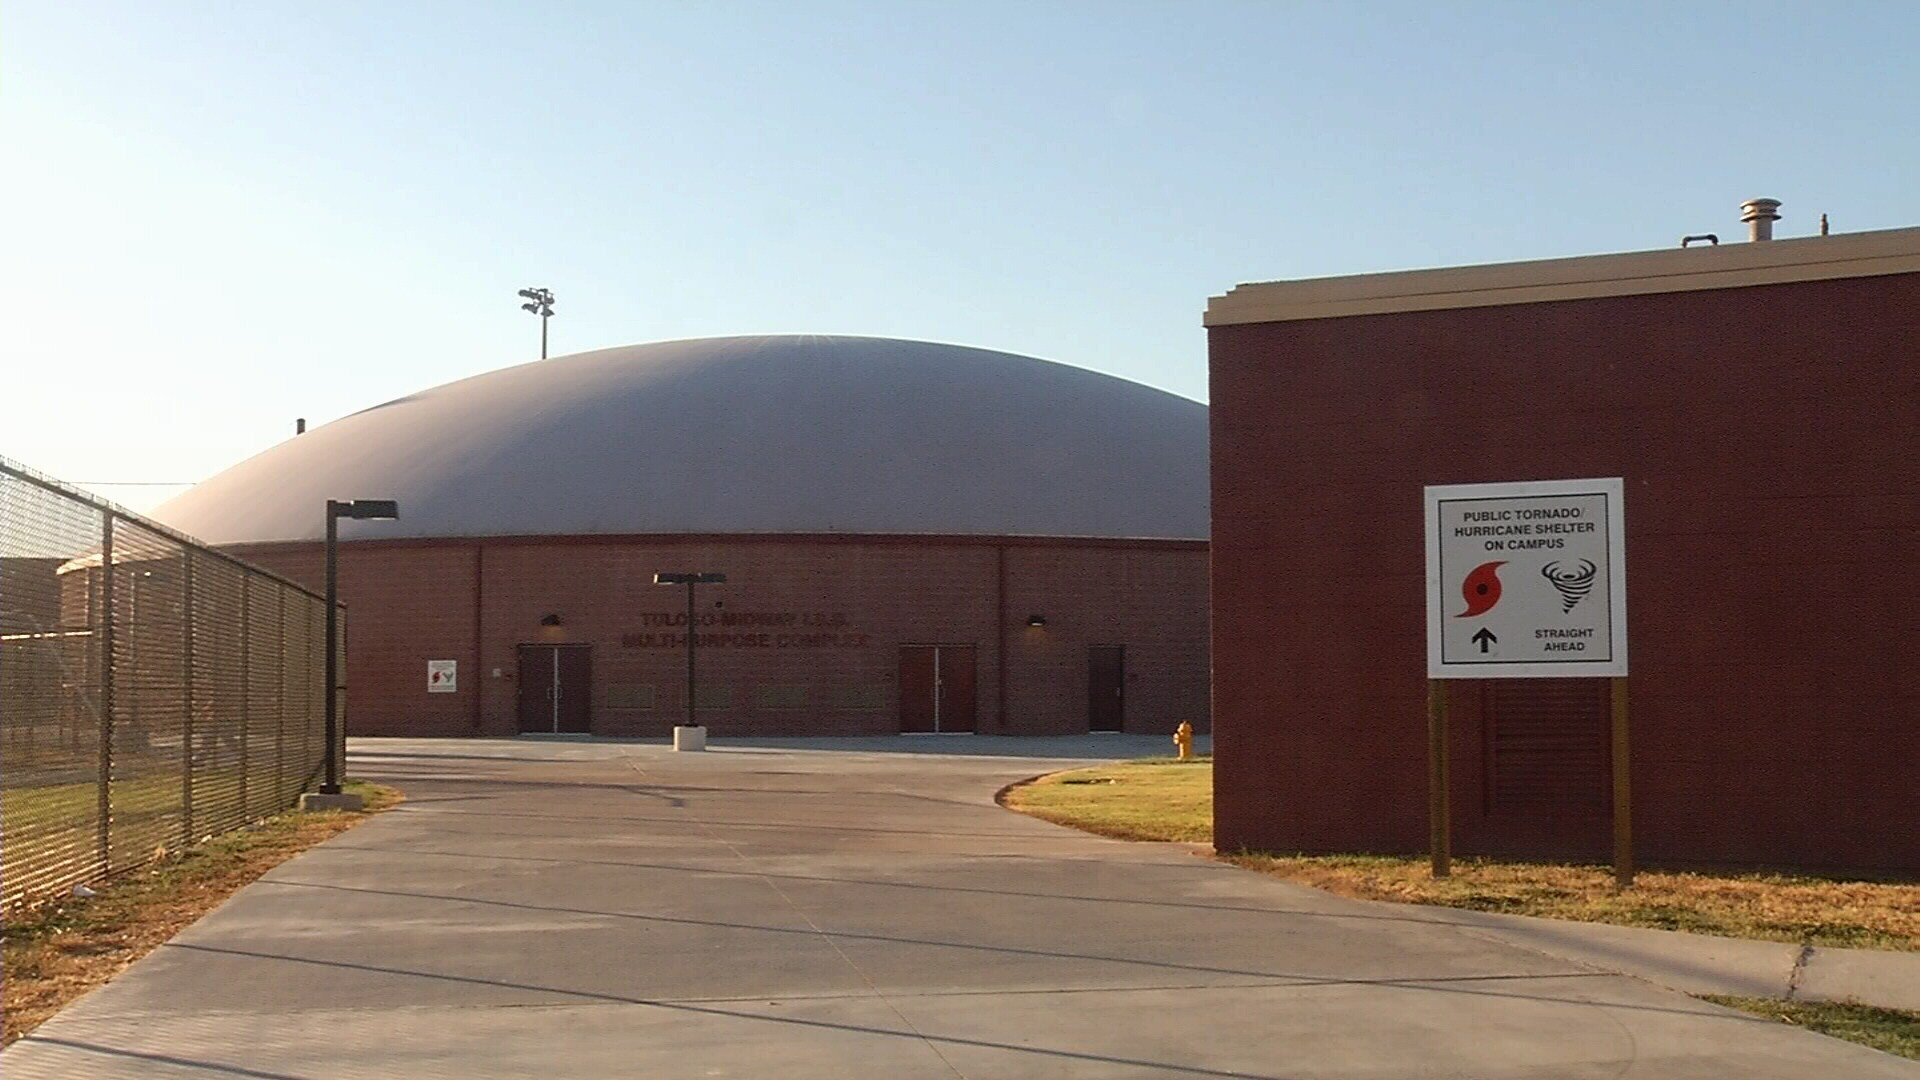 tuloso midway isd opens fema safe dome kristv com continuous tuloso midway isd opens its fema safe dome which will also serve as a